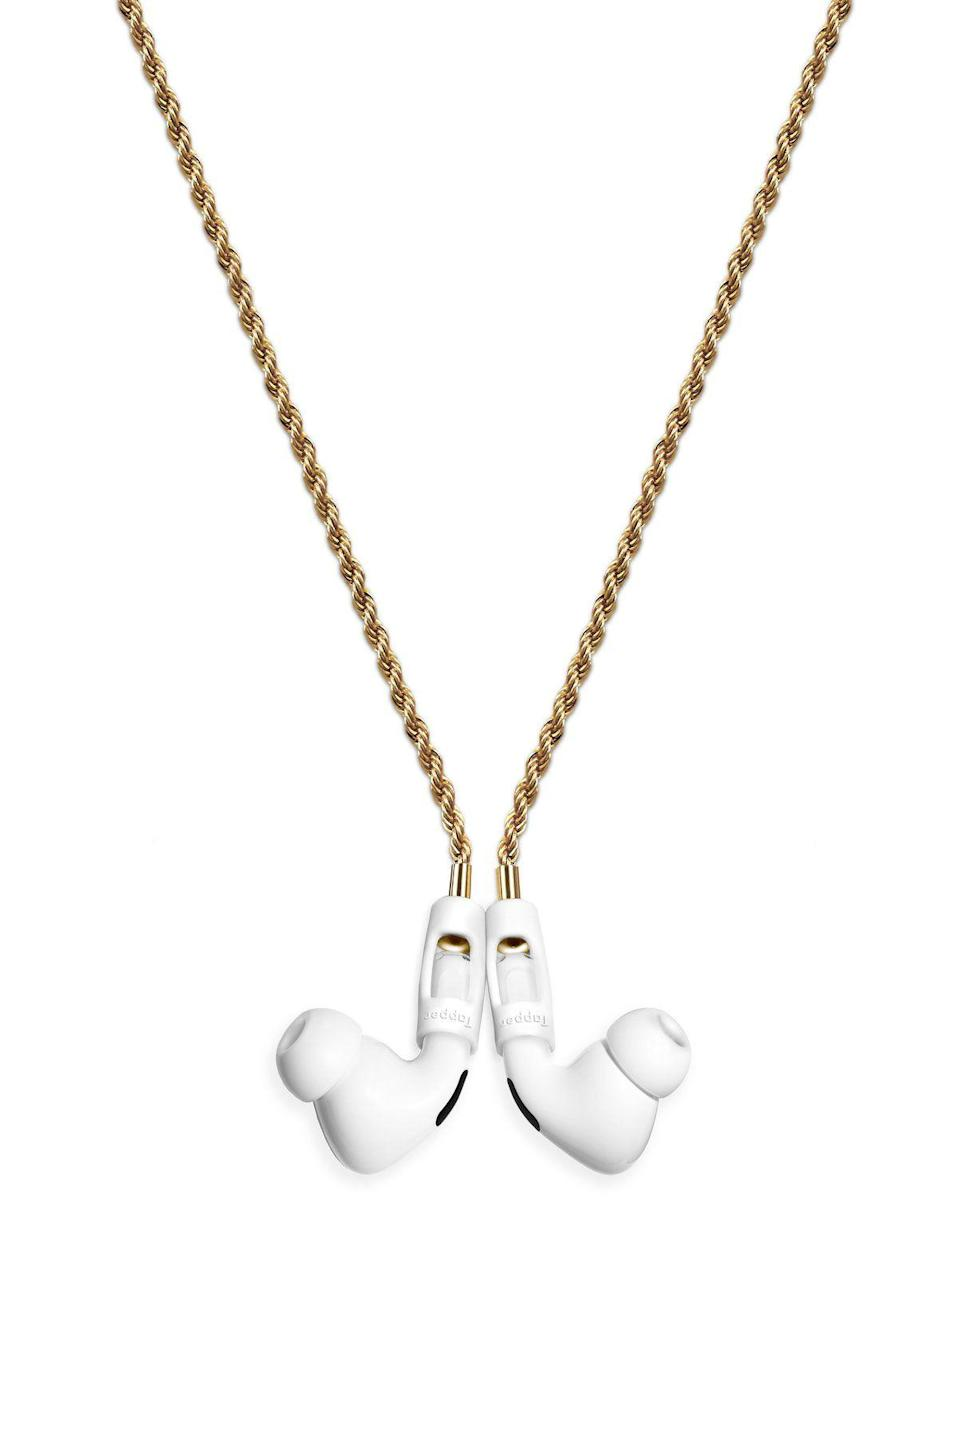 """<p><strong>Tapper</strong></p><p>gettapper.com</p><p><strong>80.00</strong></p><p><a href=""""https://www.gettapper.com/products/18k-gold-plated-rope-chain"""" rel=""""nofollow noopener"""" target=""""_blank"""" data-ylk=""""slk:Shop Now"""" class=""""link rapid-noclick-resp"""">Shop Now</a></p><p>She's on her fourth pair of AirPods? This chain will ensure that she never loses them again.</p>"""